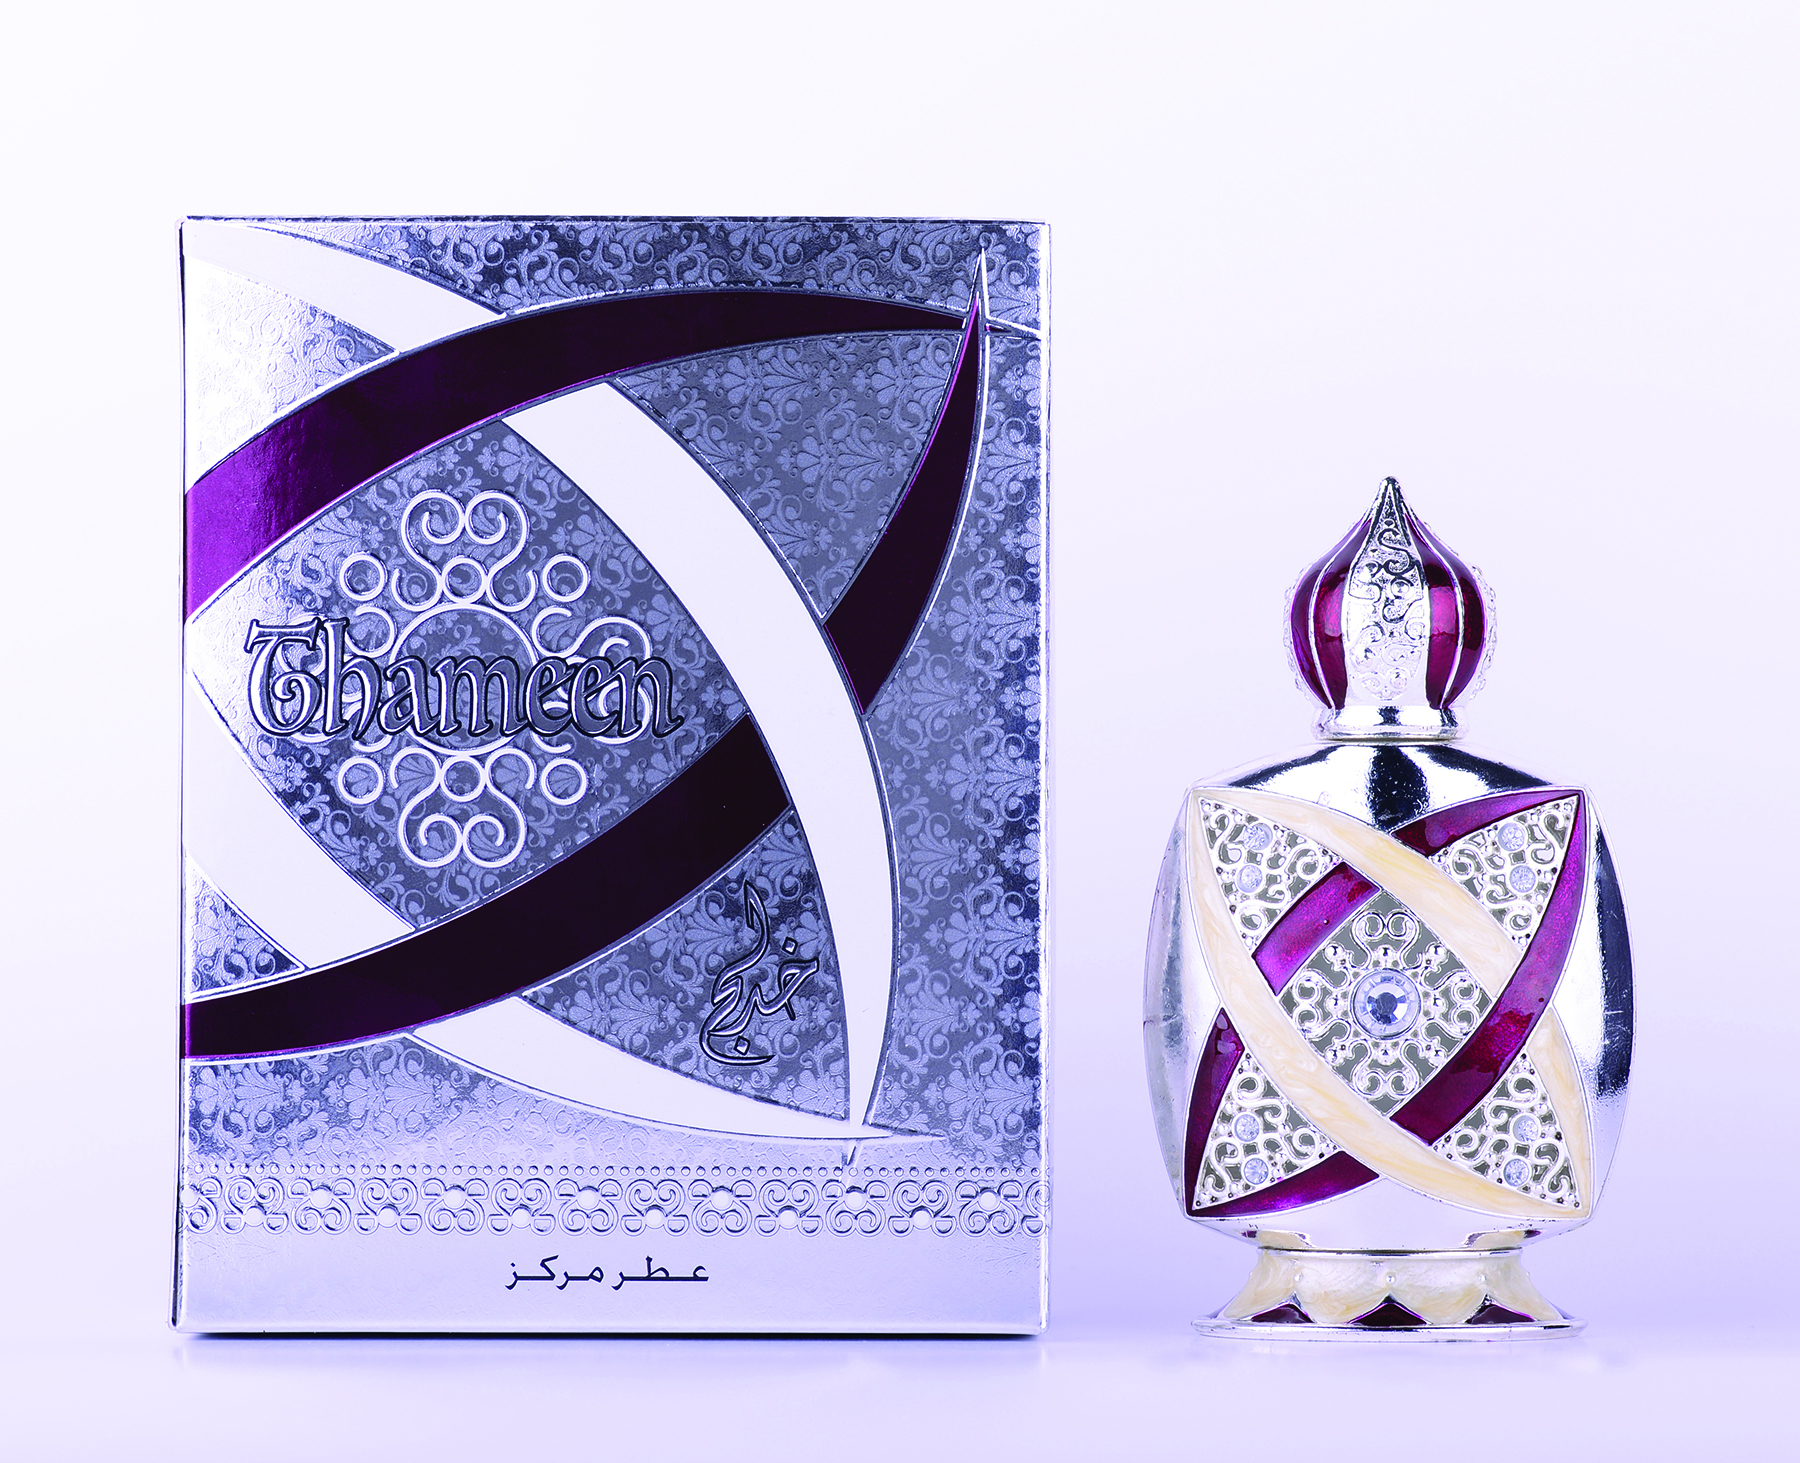 Thameen - Concentrated Perfume Oil by Khadlaj (18 ml)